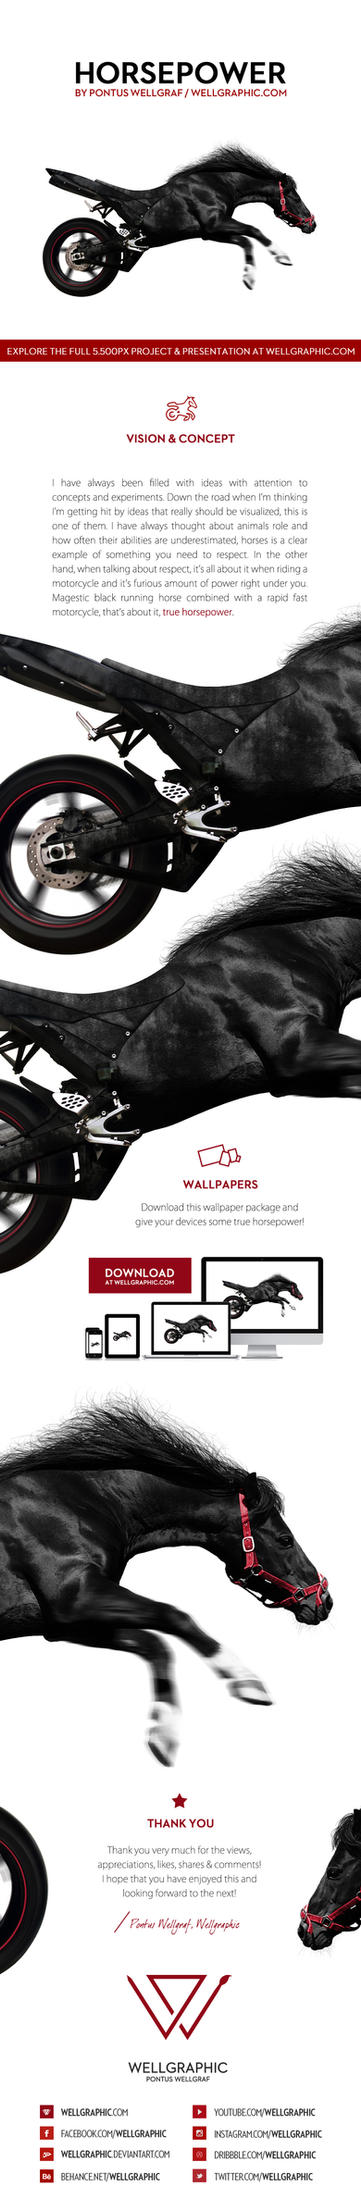 HORSEPOWER by wellgraphic